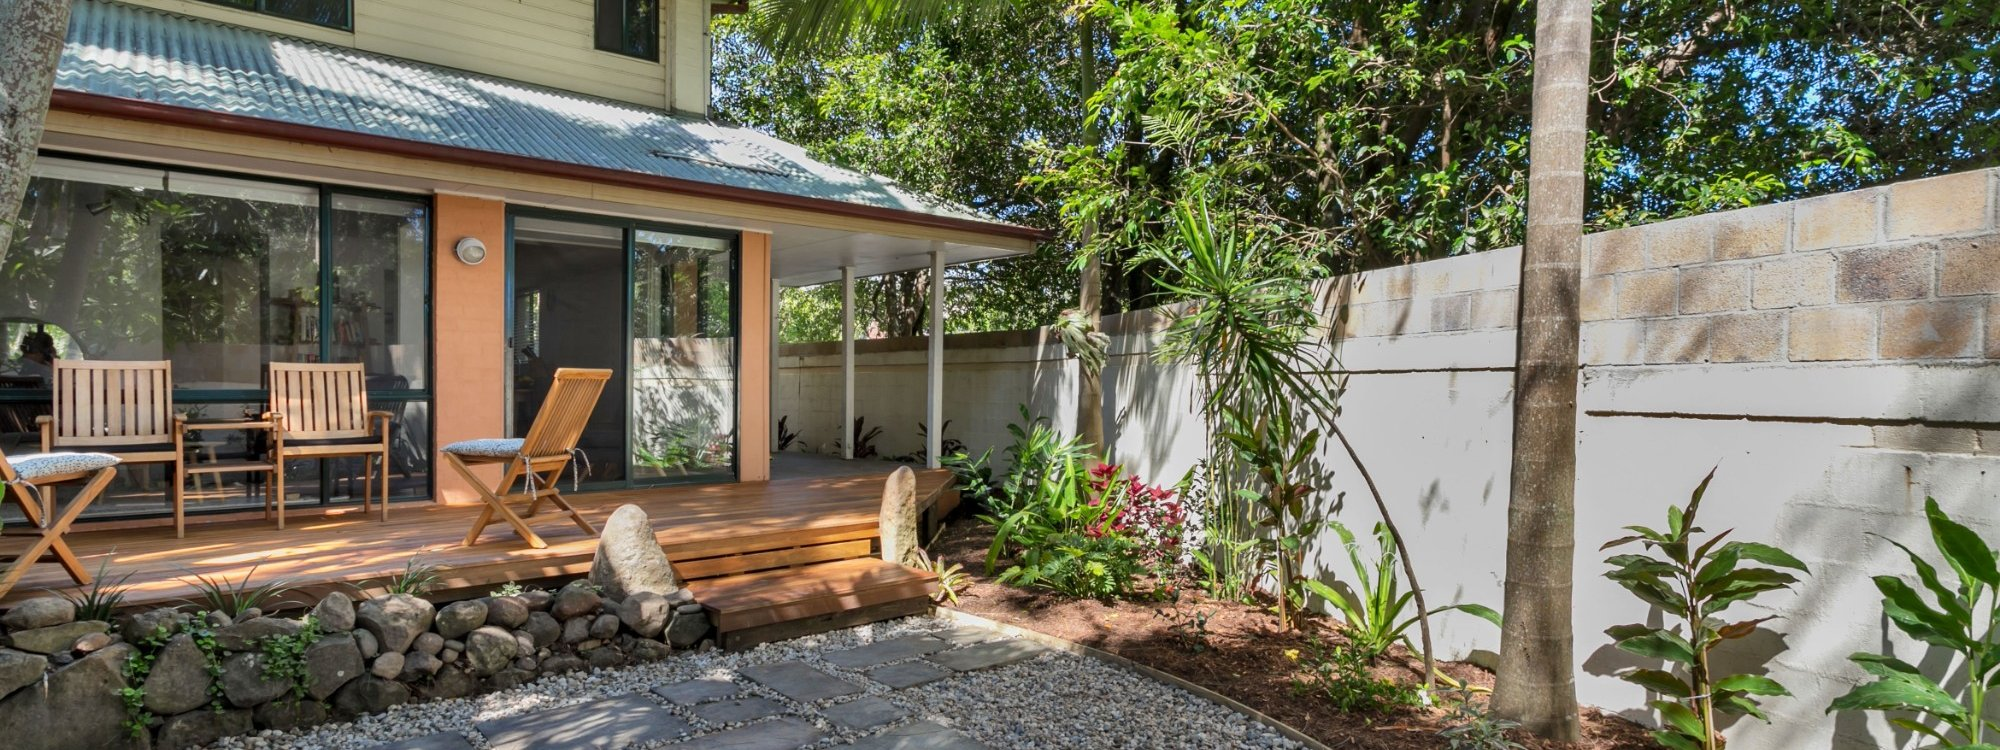 Mahogany Lodge - Byron Bay - gardens looking to rear deck area